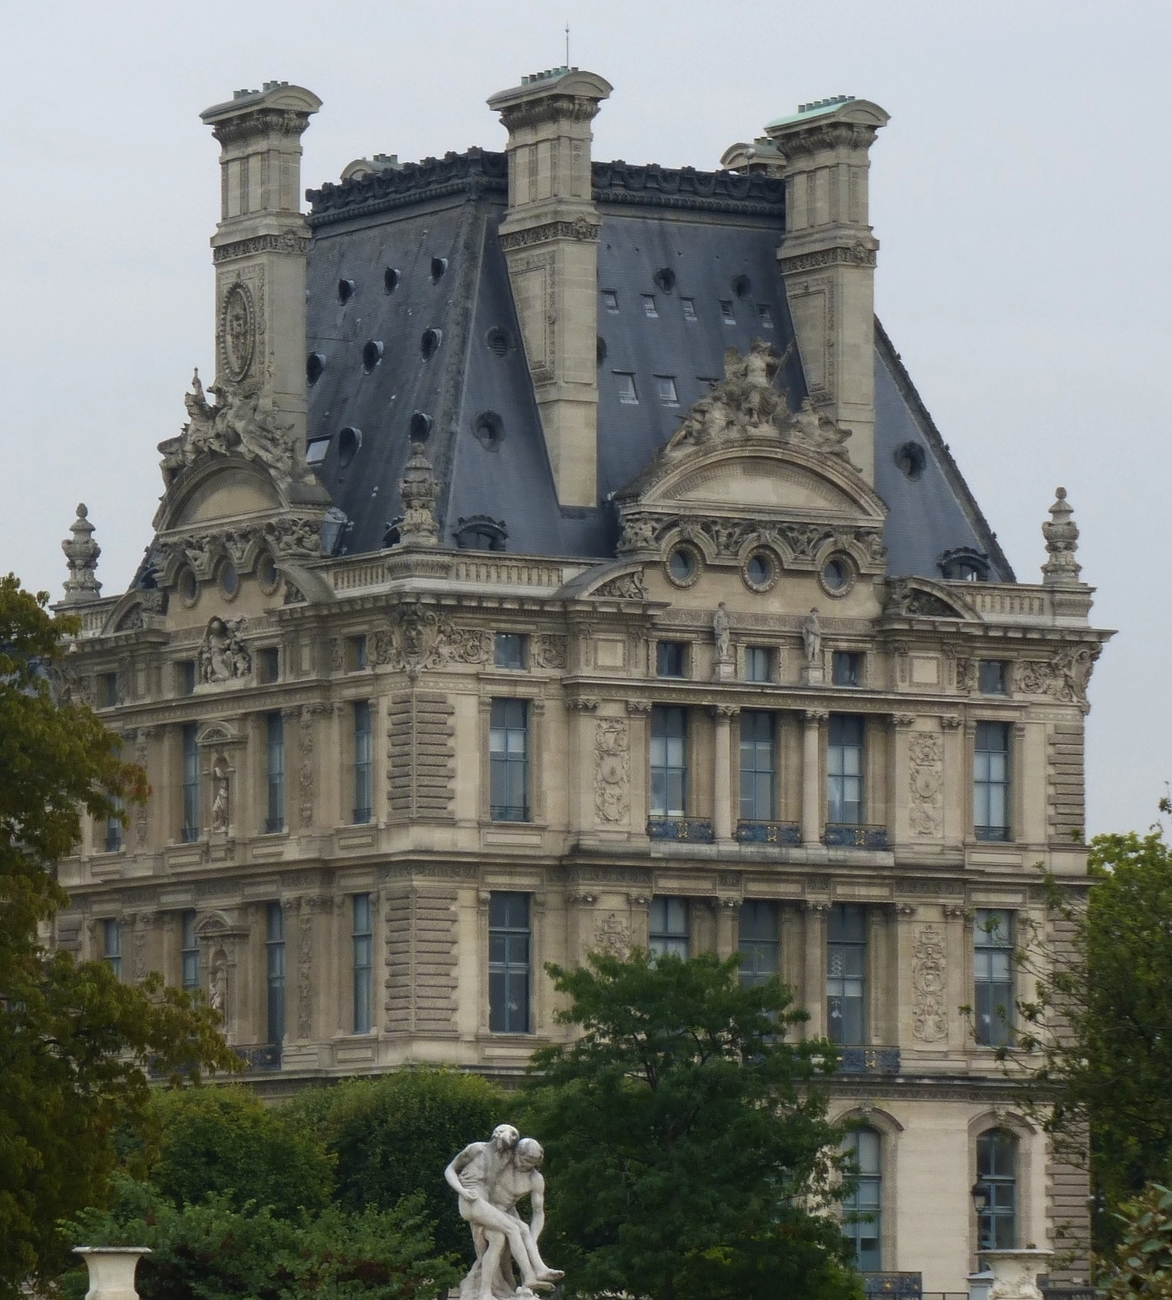 One of the buildings of the Louvre that once was a palace.